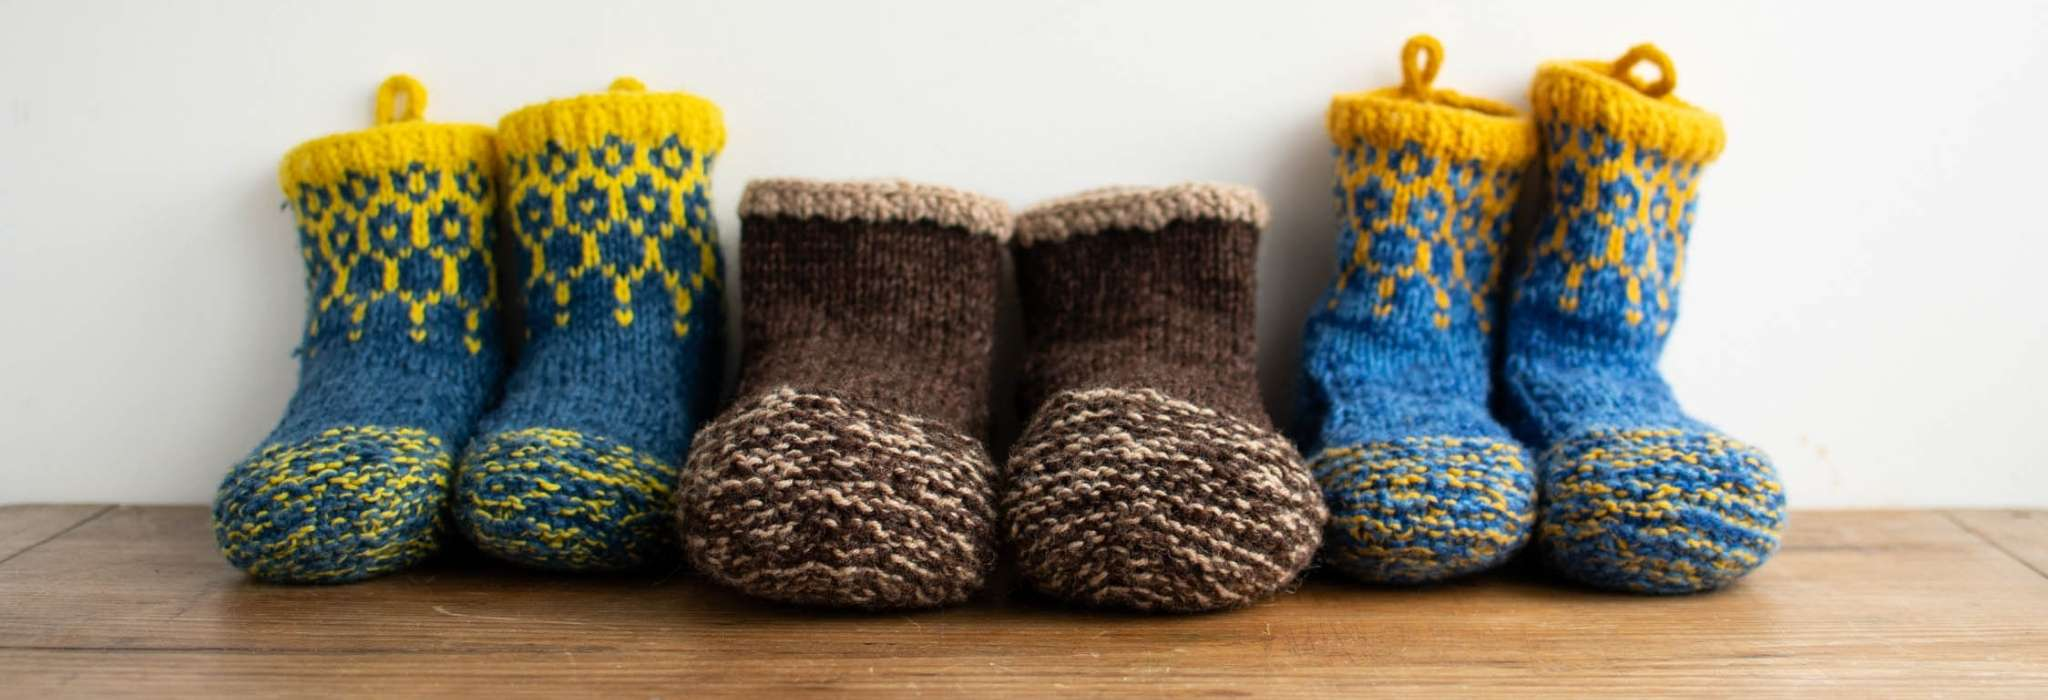 three pairs of knitted slippers lined up against a wall on a wooden surface. The pairs at either end are blue and yellow and the central pair are knitting in shades of brown.